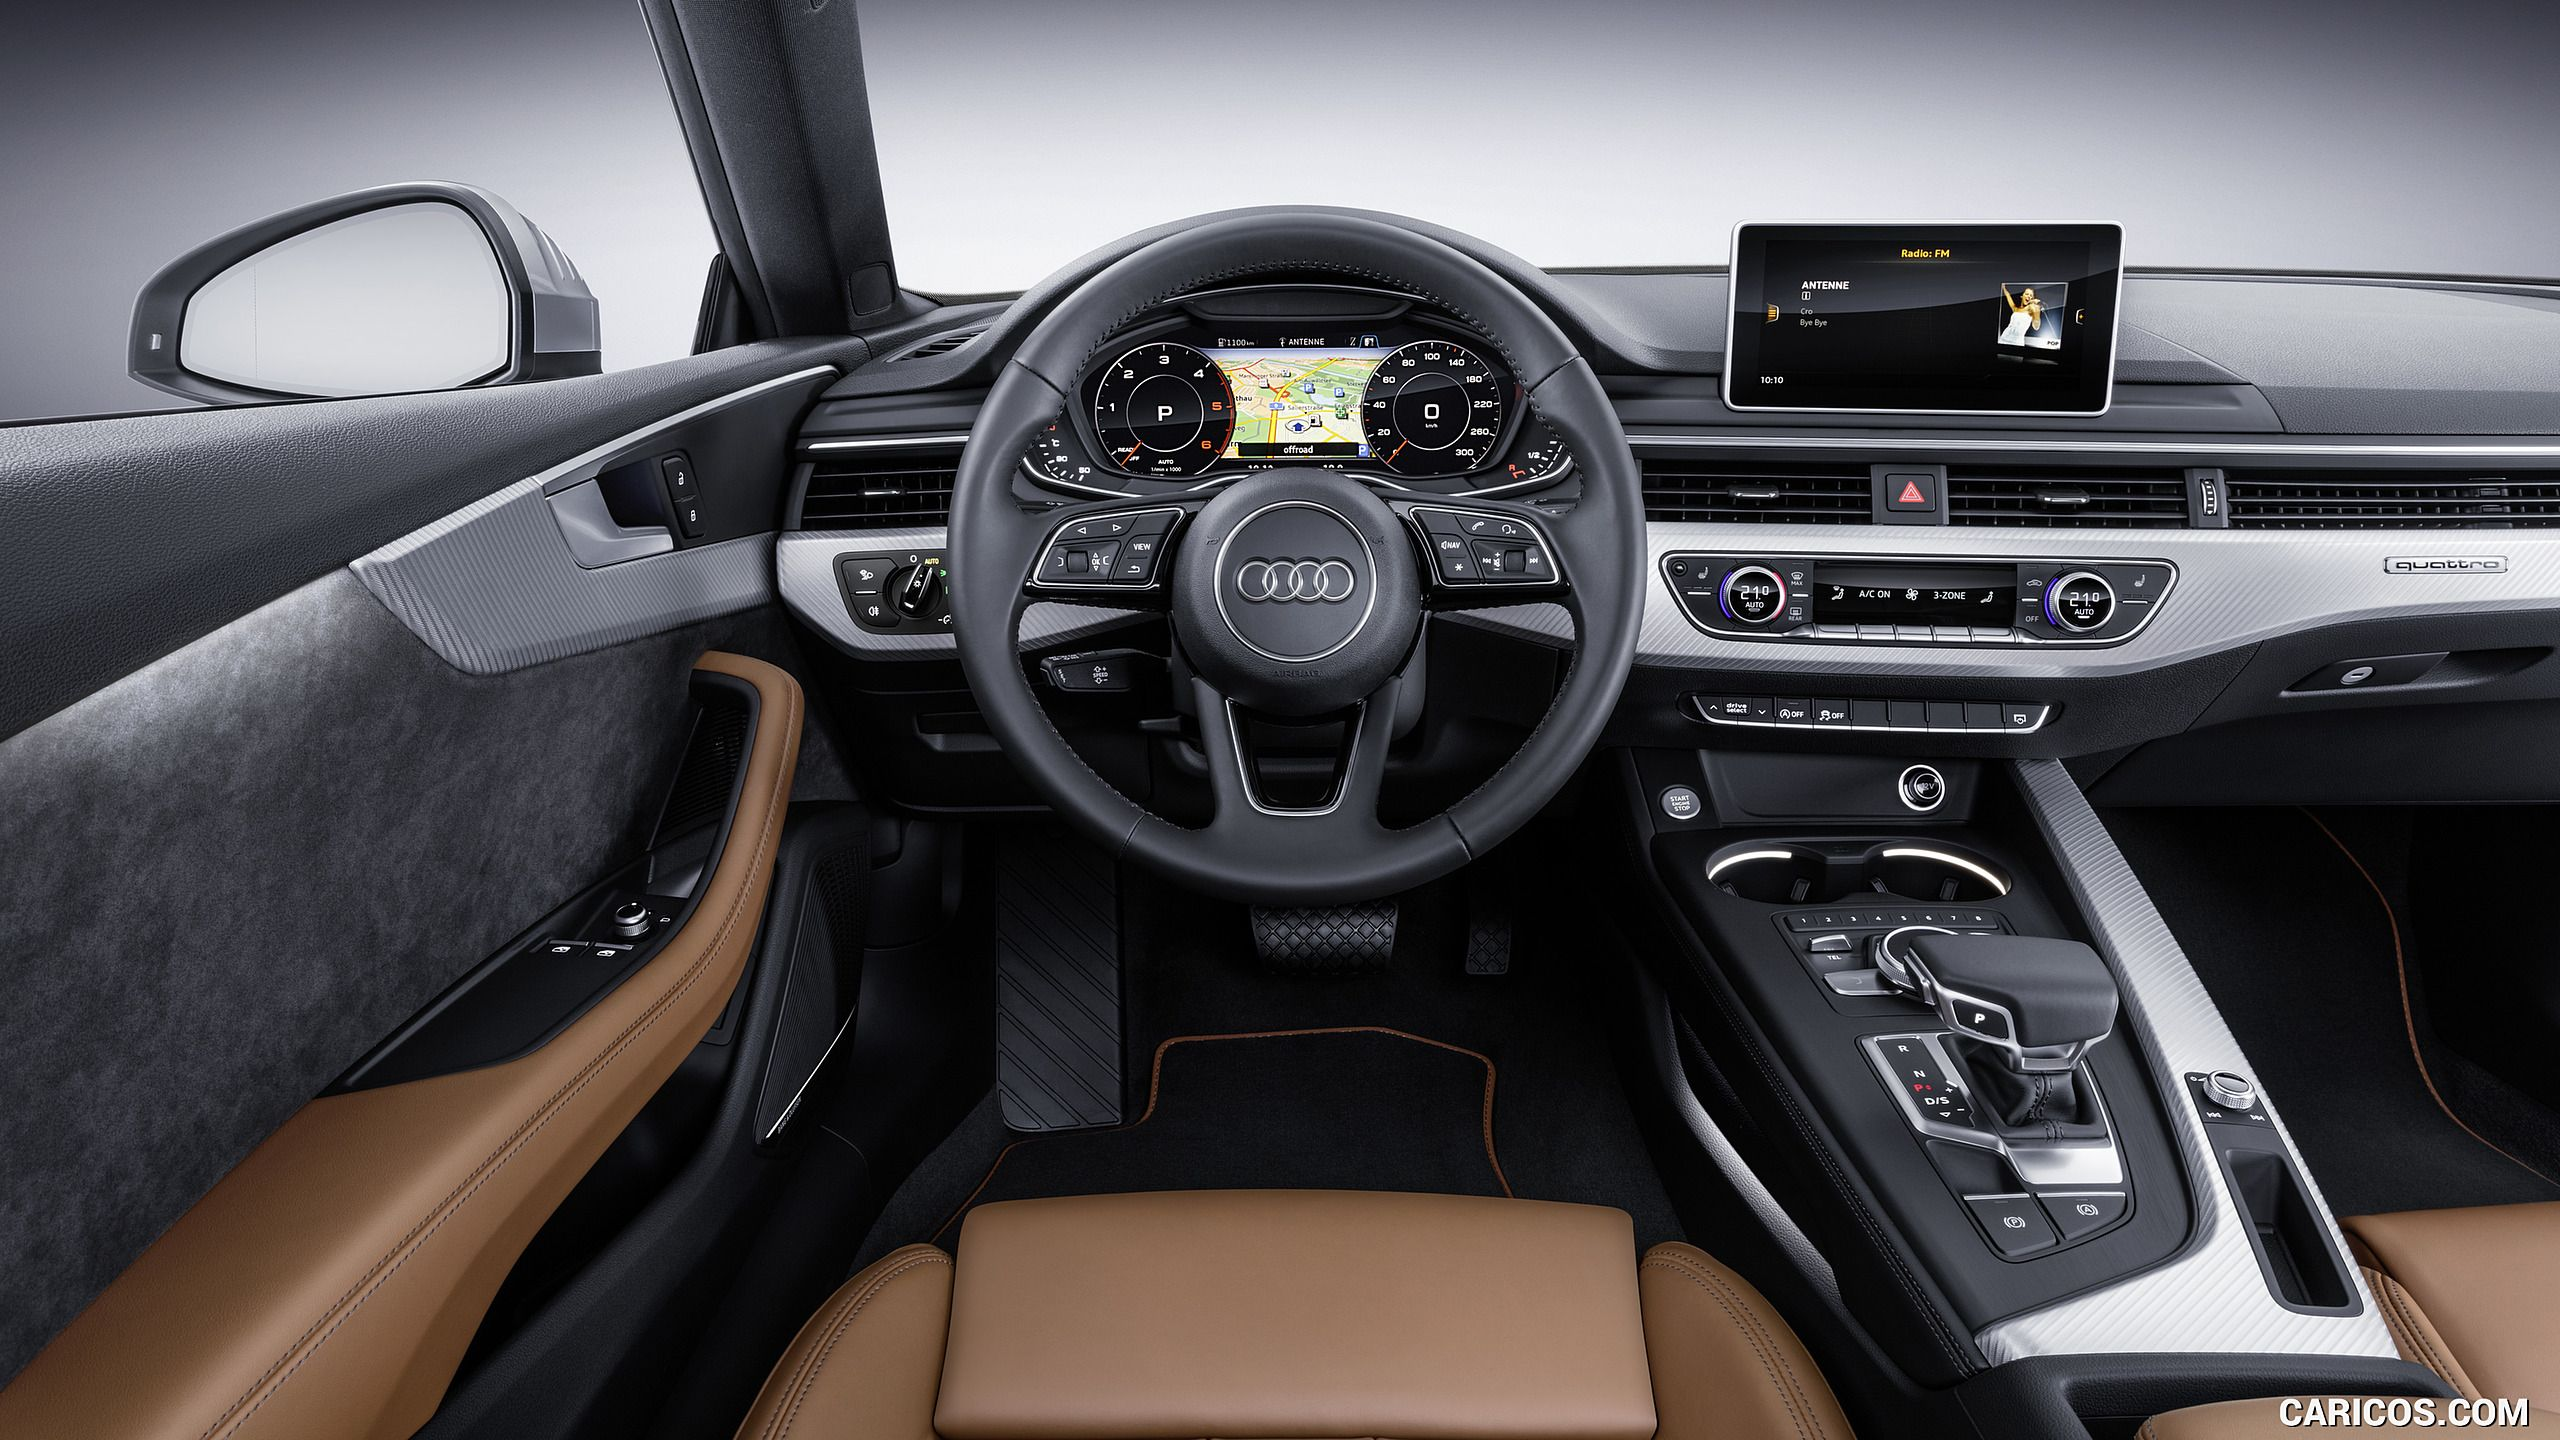 2018 Audi A5 Coupe Interior Cockpit Hd Audi A5 Coupe Audi A5 A5 Coupe